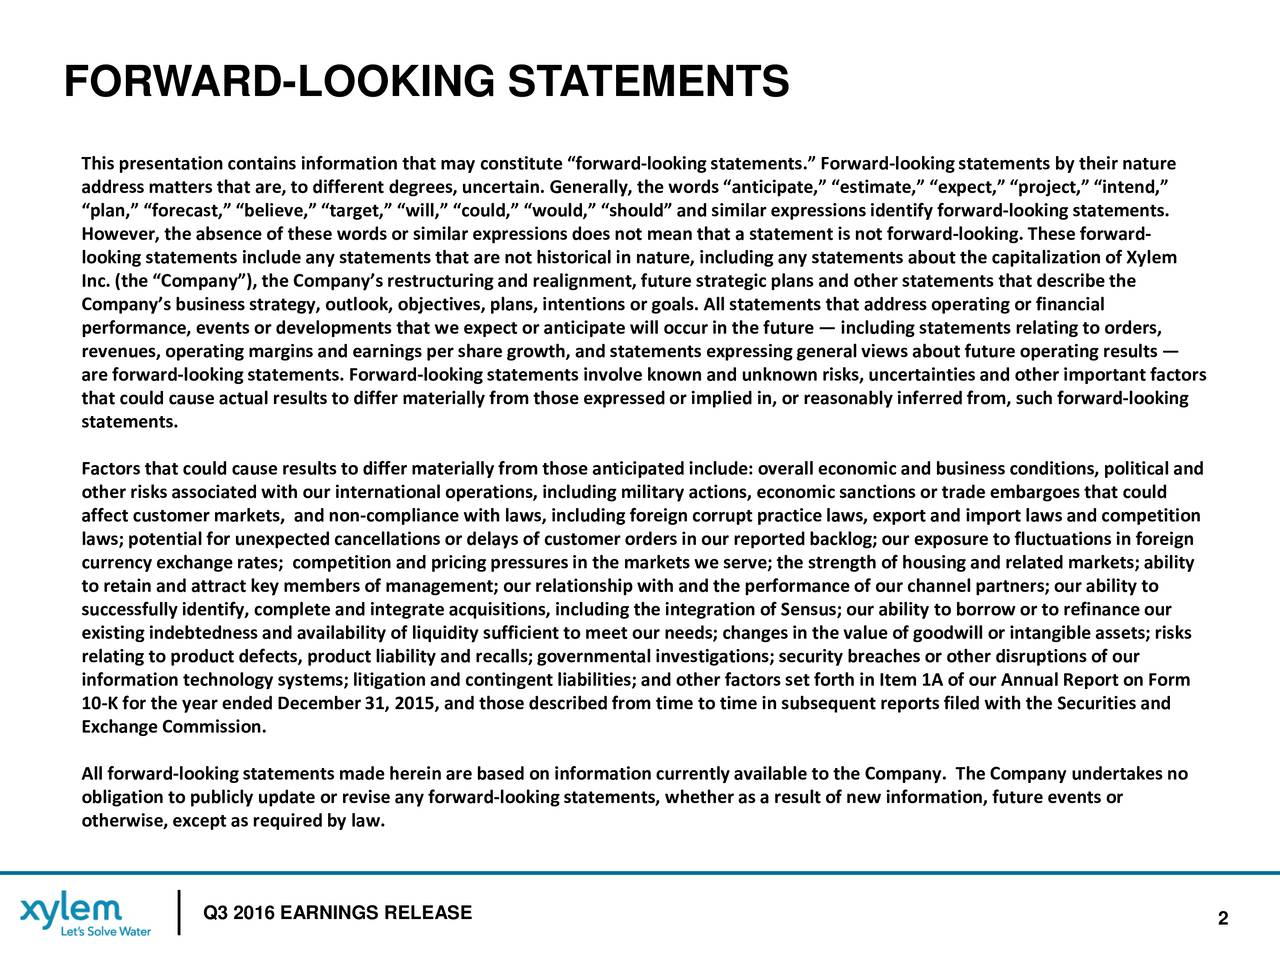 This presentation contains information that may constitute forward-looking statements. Forward-looking statements by their nature address matters that are, to different degrees, uncertain. Generally, the words anticipate, estimate, expect, pr,intend, plan, forecast, believe, target, will, could, would, should and similar expressions identify fo- oking statements. However, the absence of these words or similar expressions does not mean that a statement is not forwardl-ooking. These forward- looking statements include any statements that are not historical in nature, including any statements about the capitalin of Xylem Inc. (the Company), the Companys restructuring and realignment, future strategic plans and other statements that descrithe Companys business strategy, outlook, objectives, plans, intentions or goals. All statements that address operating or finanical performance, events or developments that we expect or anticipate will occur in the future including statements relating to orders, revenues, operating margins and earnings per share growth, and statements expressing general views about future operating reuslts are forward-looking statements.Forward-looking statements involve known and unknown risks, uncertainties and other important factors that could cause actual results to differ materially from those expressed or implied in, or reasonably inferred from, rward-looking statements. Factors that could cause results to differ materially from those anticipated include: overall economic and business condit, olitical and other risks associated with our international operations, including military actions, economic sanctions or trade embargoeshtat could affect customer markets, and non-compliance with laws, including foreign corrupt practice laws, export and import laws and competition laws; potential for unexpected cancellations or delays of customer orders in our reported backlog; our exposure to fluctns in foreign currency exchange rates; competition and pric